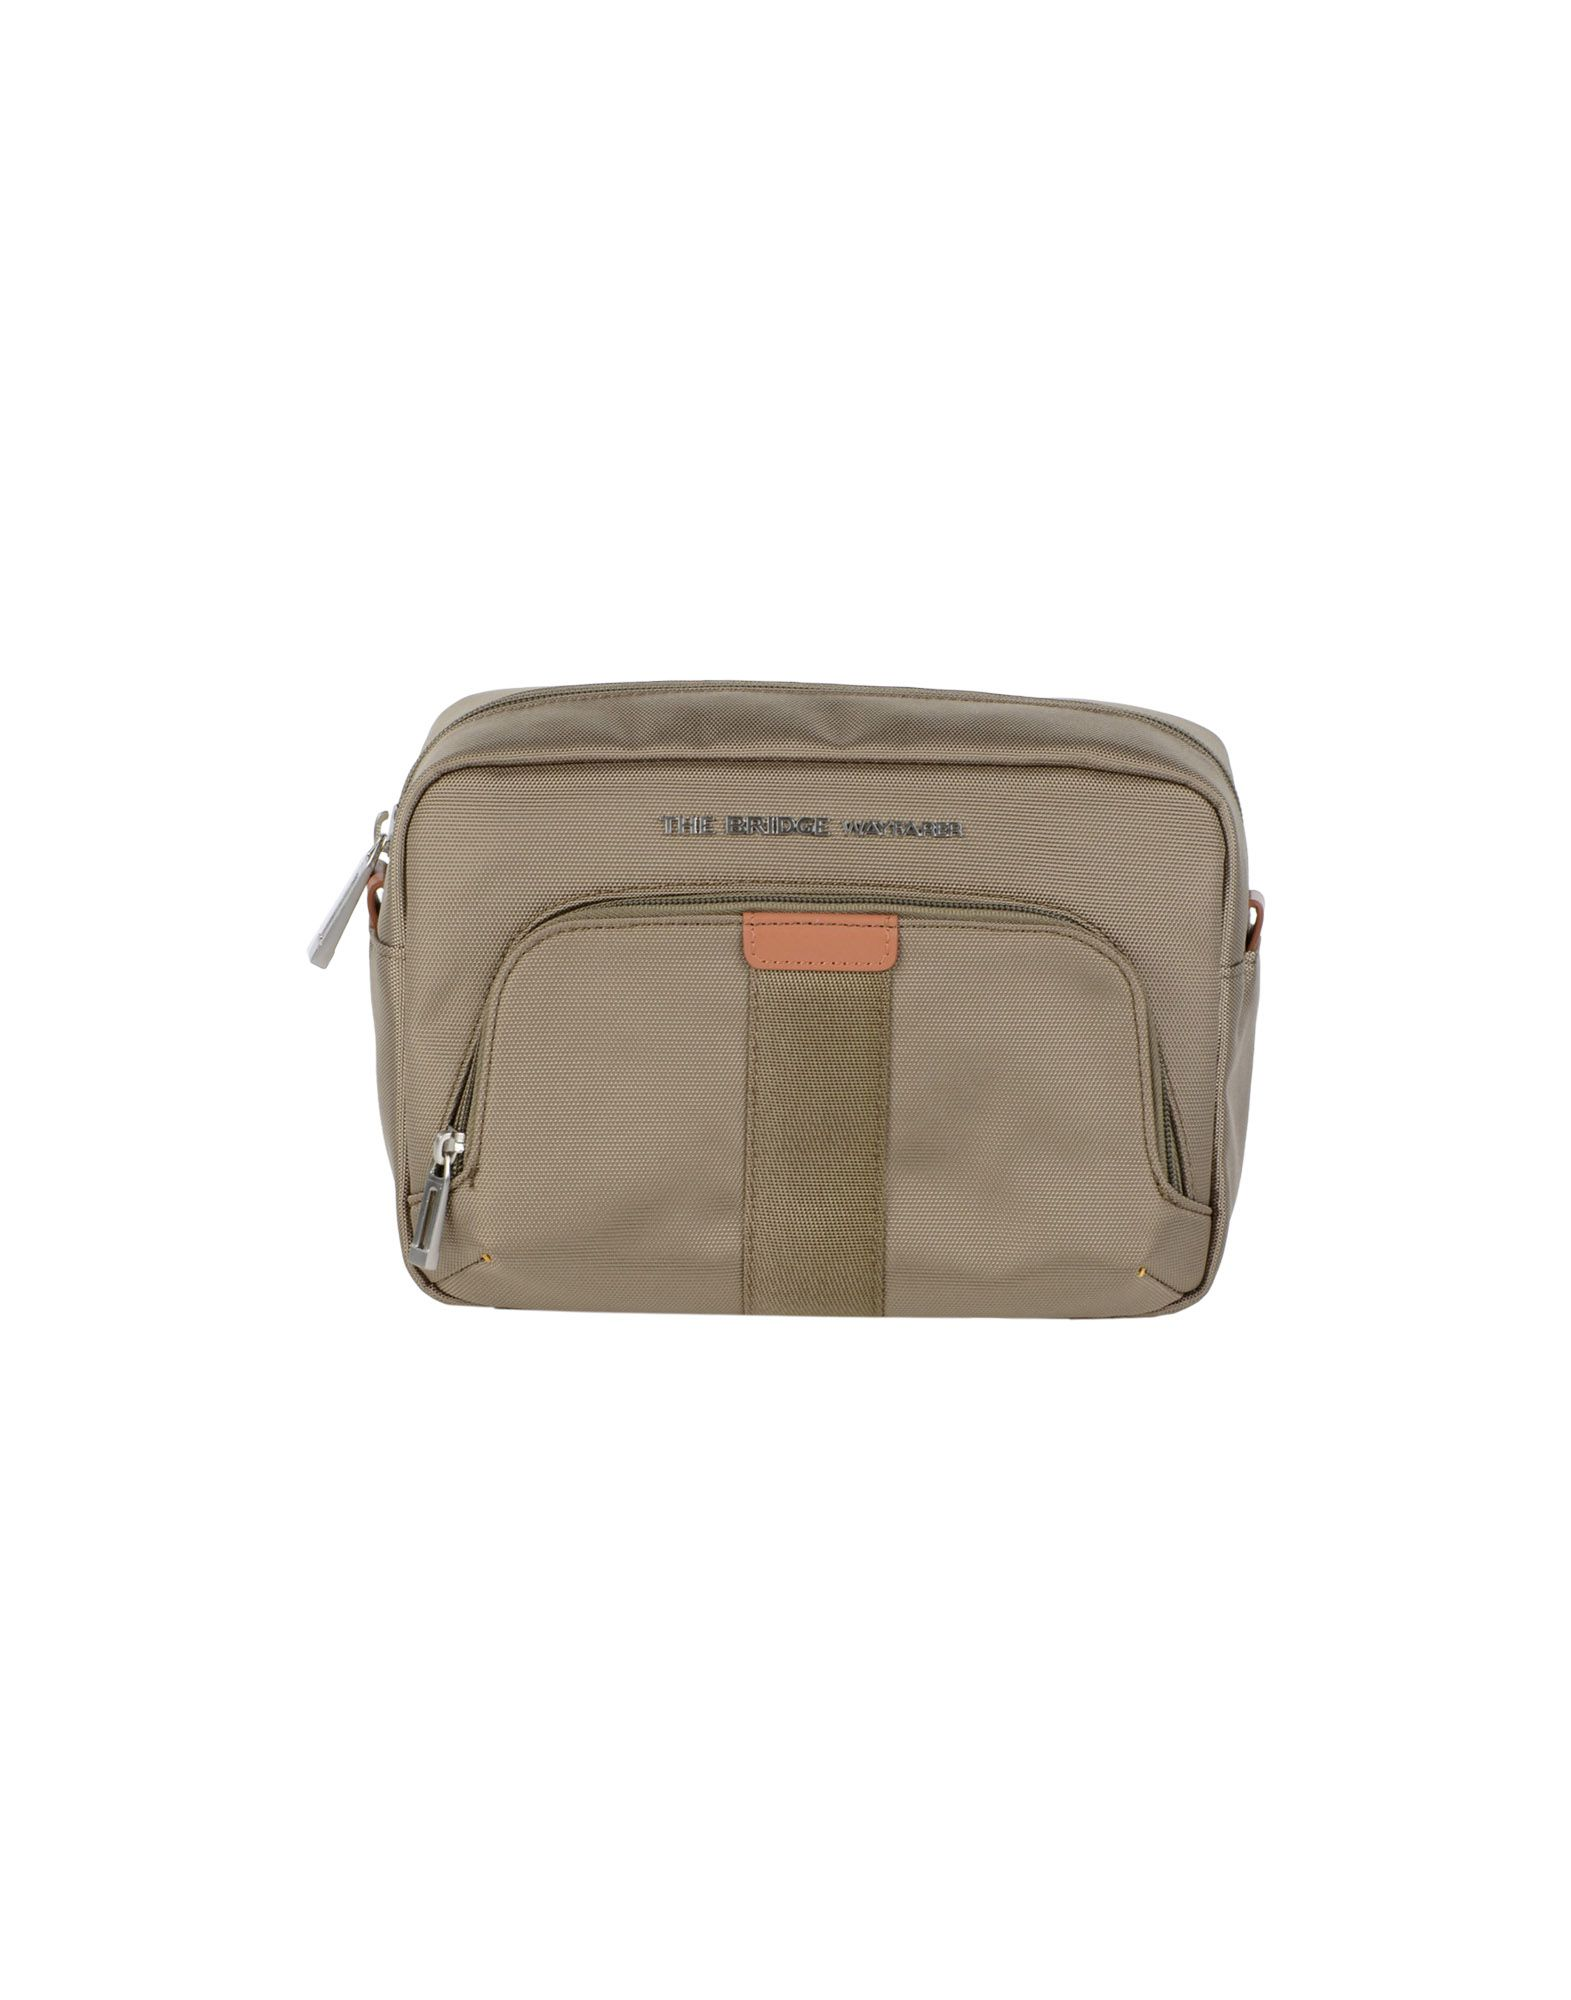 WAYFARER THE BRIDGE Beauty case